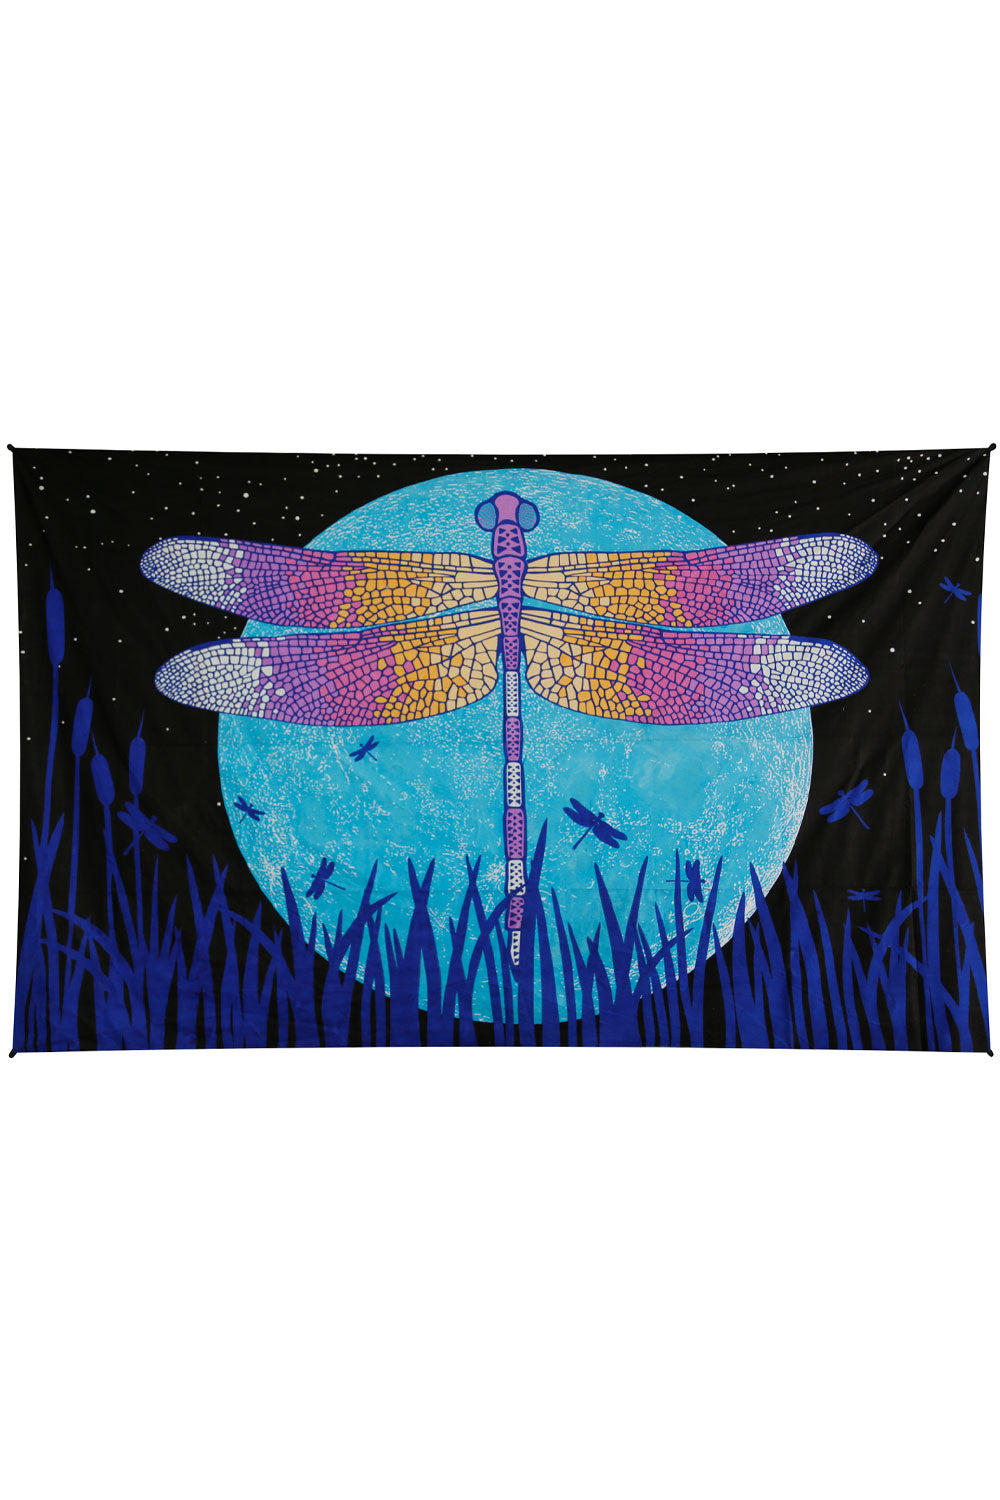 3D Glow Dragonfly Moon